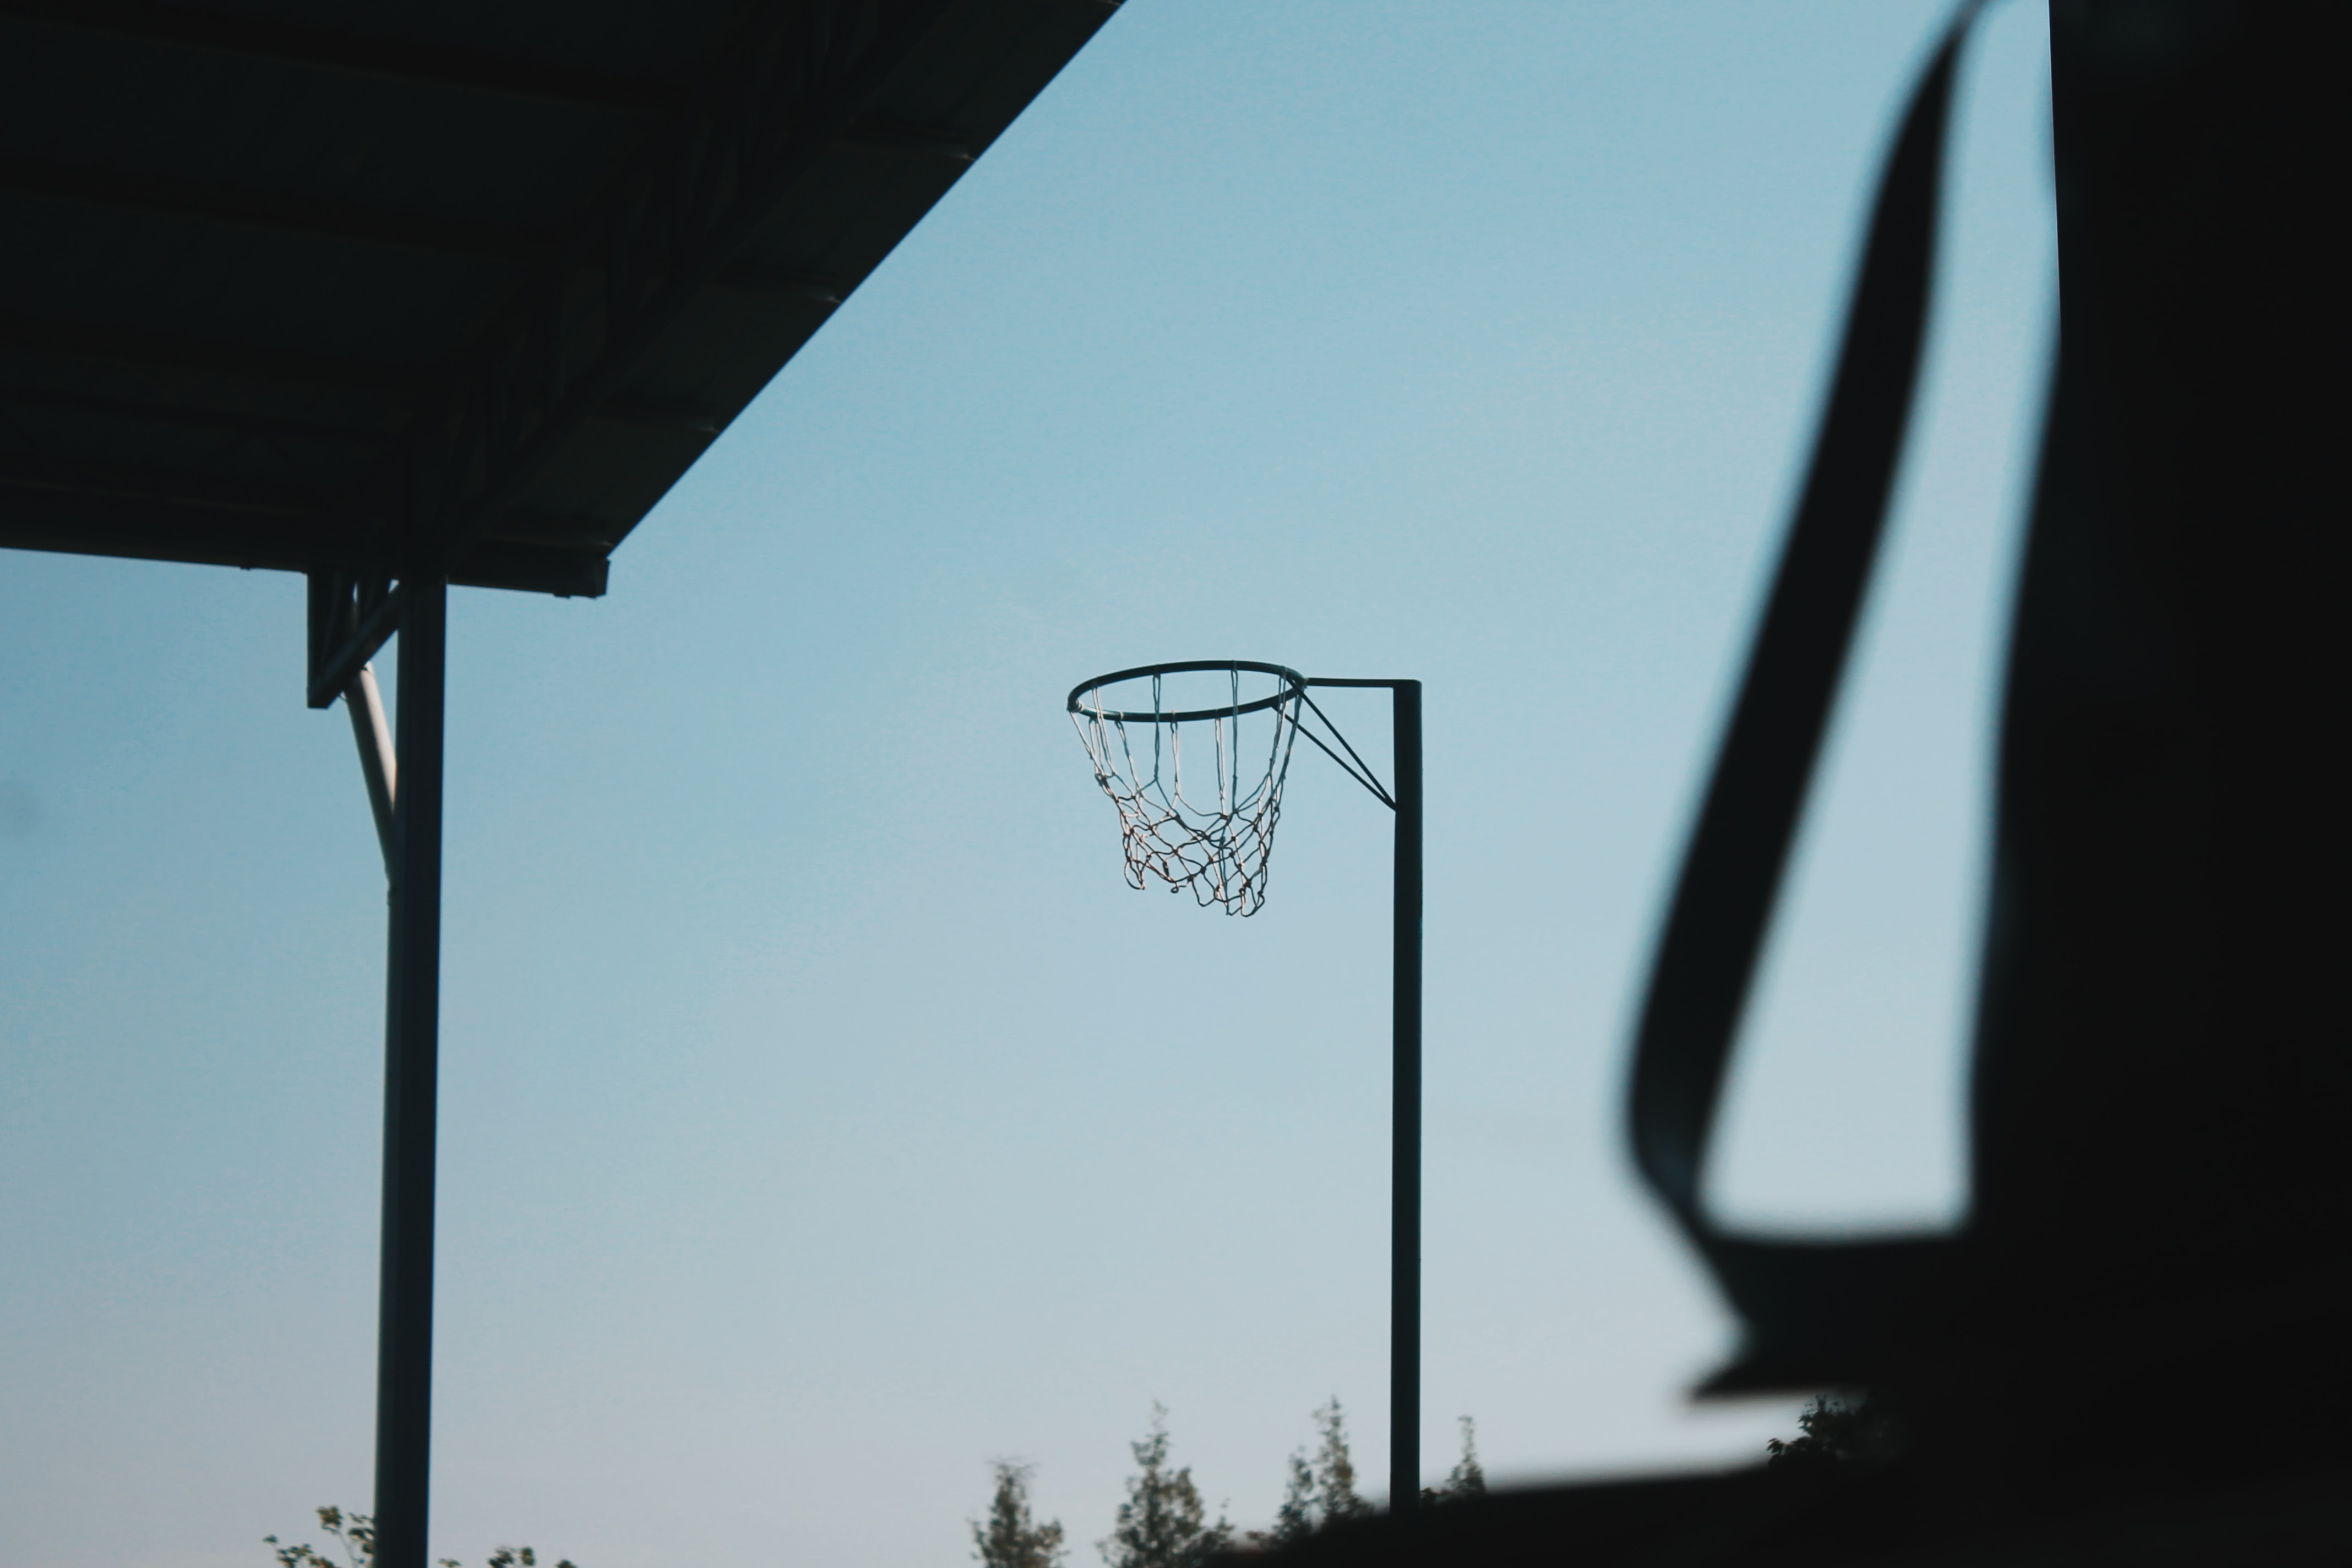 basketball hoop without board